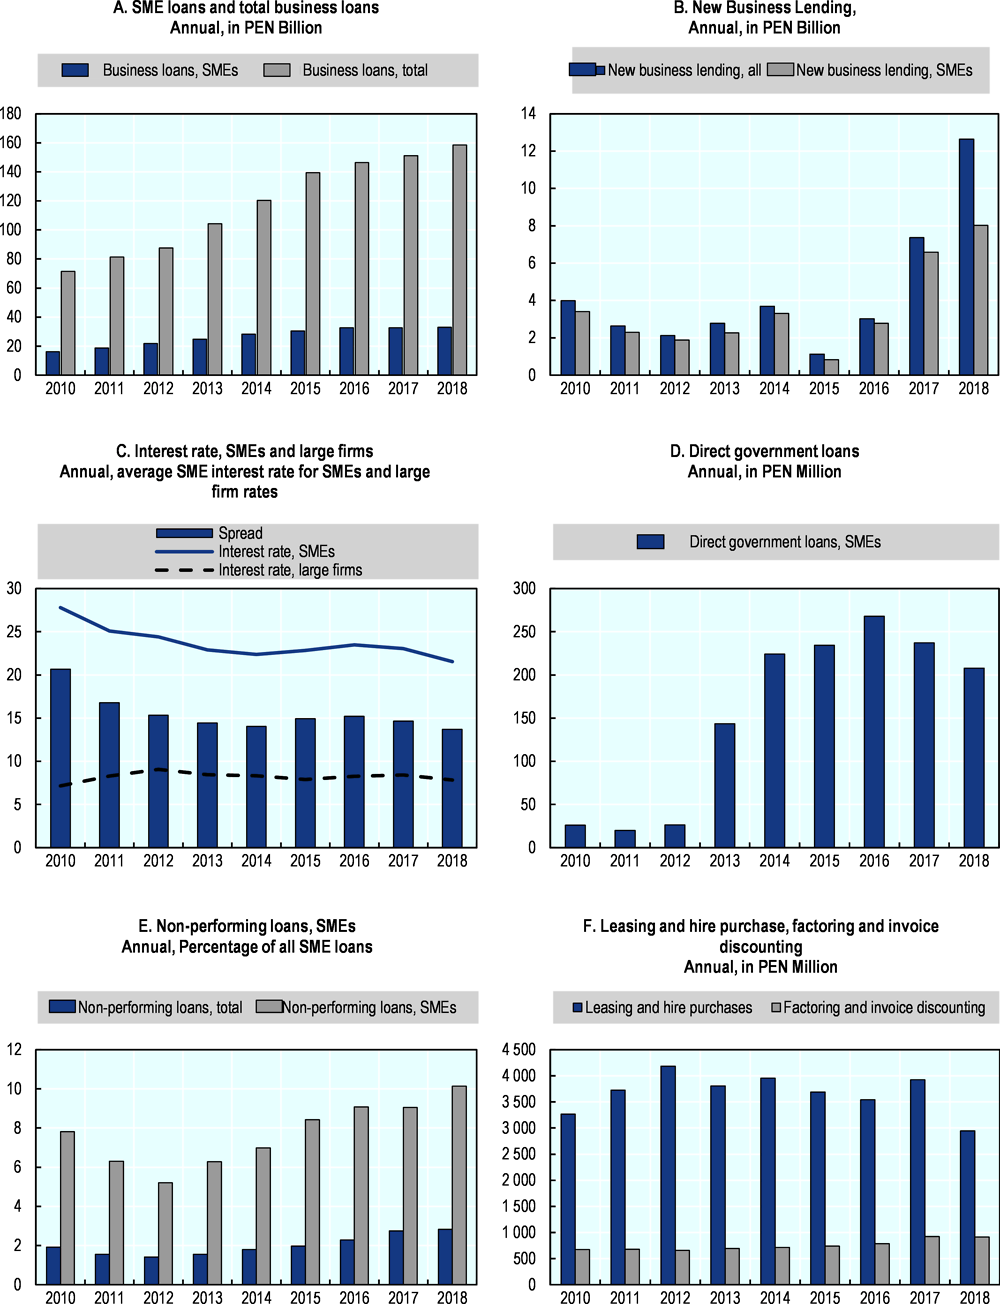 Figure 35.7. Trends in SME and entrepreneurship finance in Peru